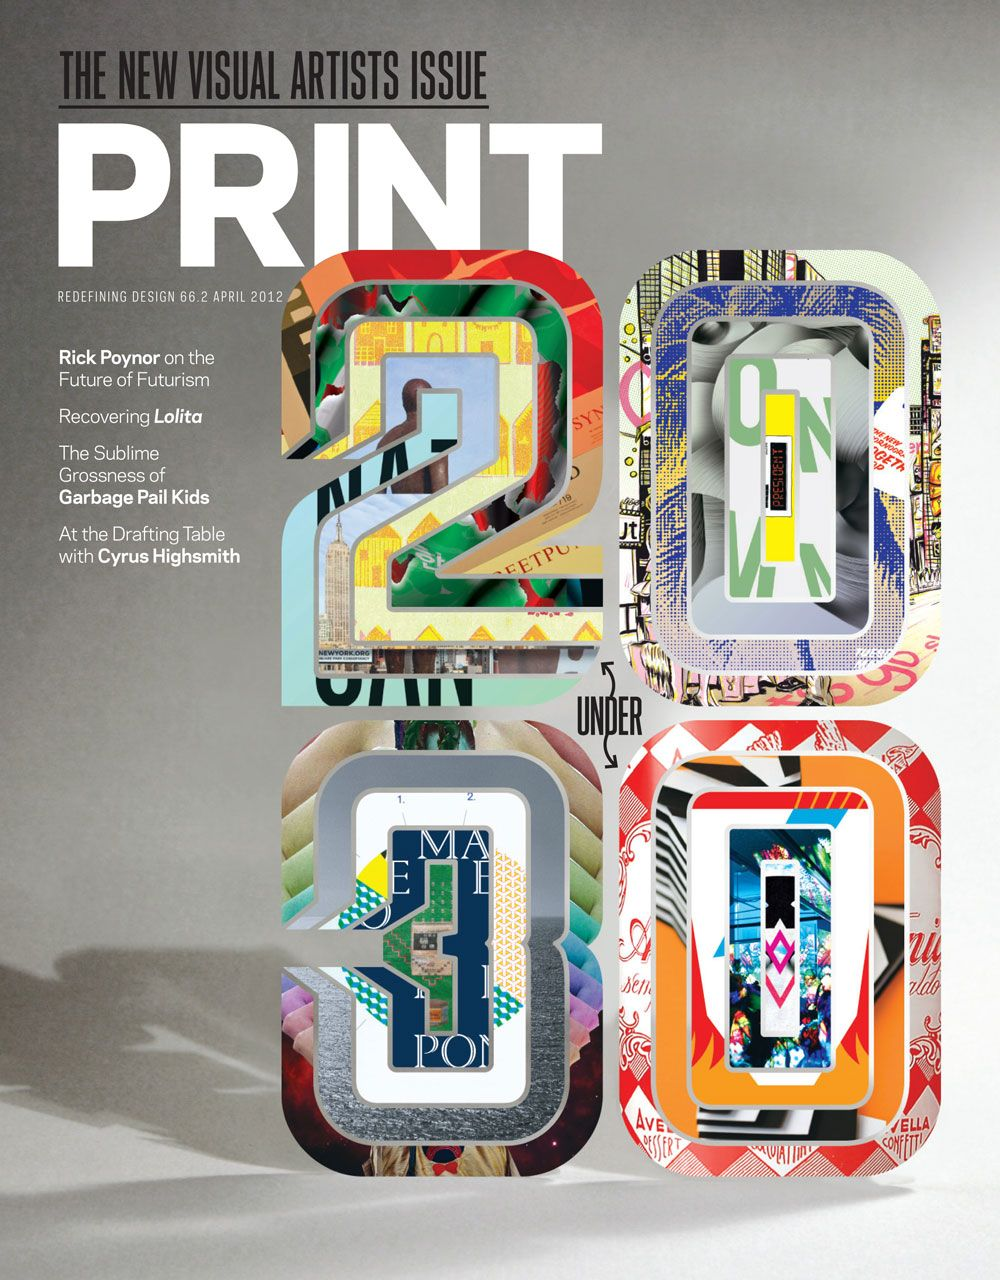 Printing Costs of Magazines - Shweiki Media